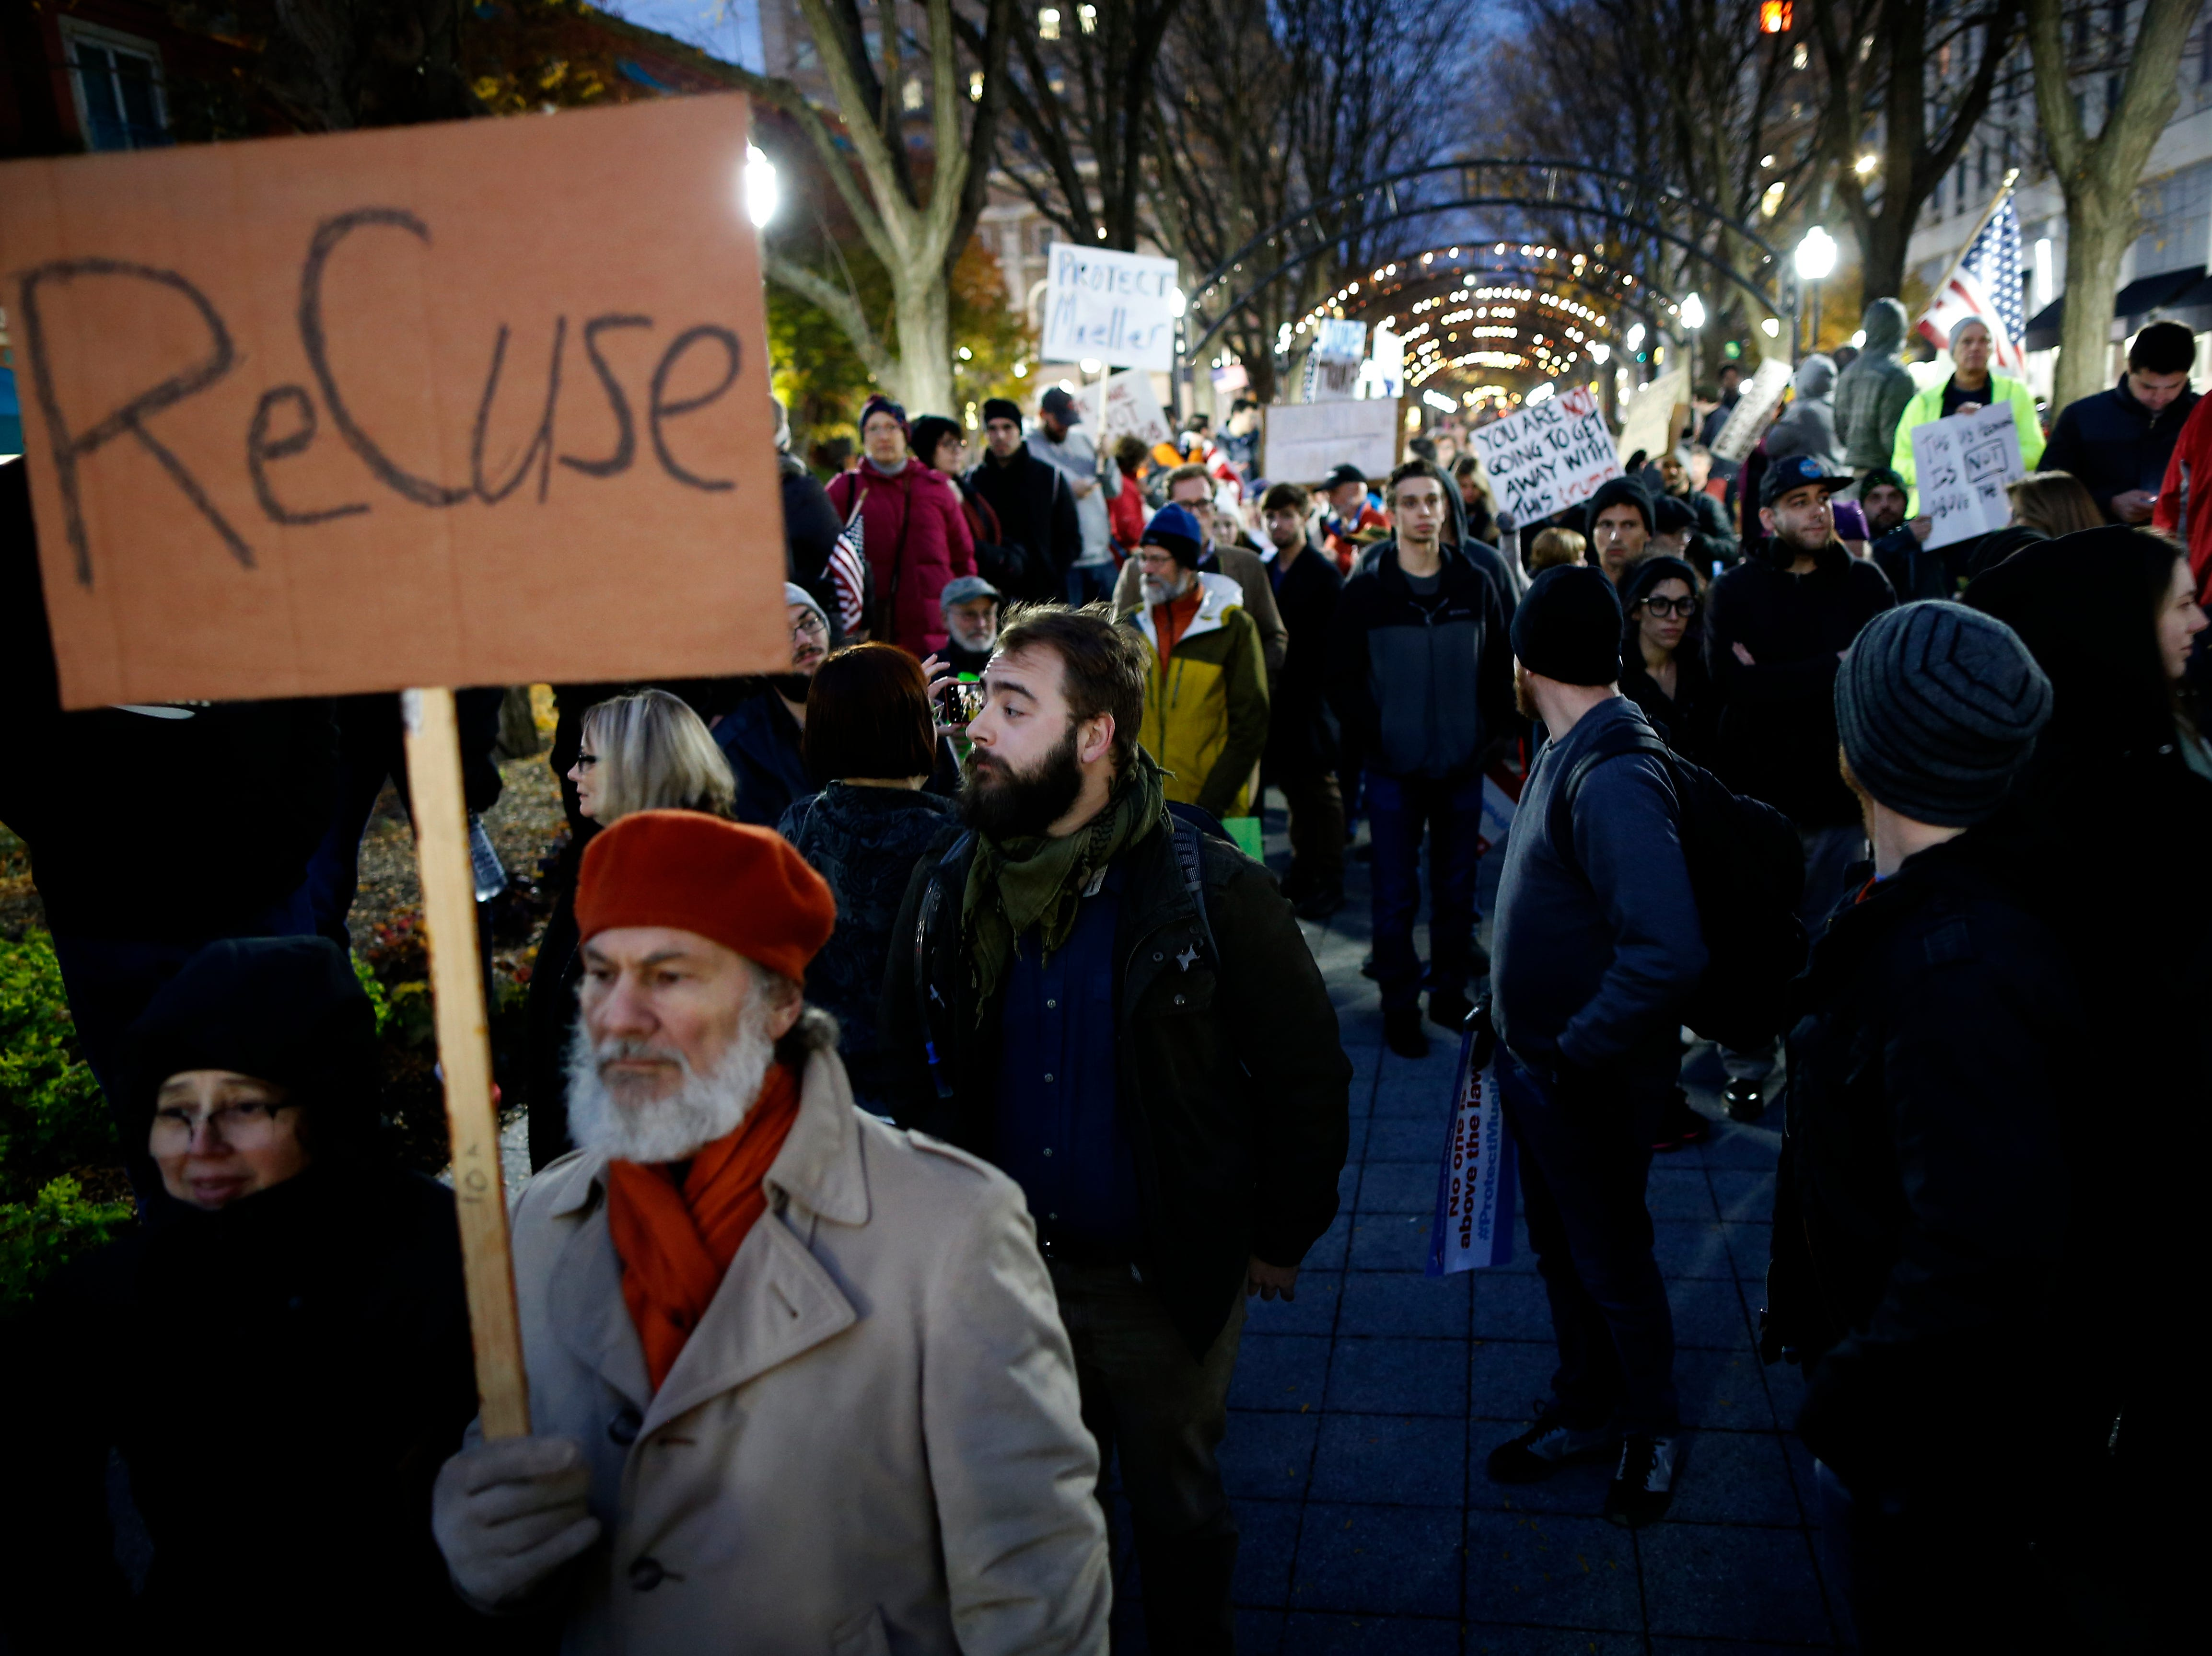 Demonstrators gather after completing a march around downtown during a nationwide protest following the resignation of attorney general Jeff Sessions and President Donald Trump's appointment of Matthew Whitaker at Piatt Park in downtown Cincinnati on Thursday, Nov. 8, 2018.